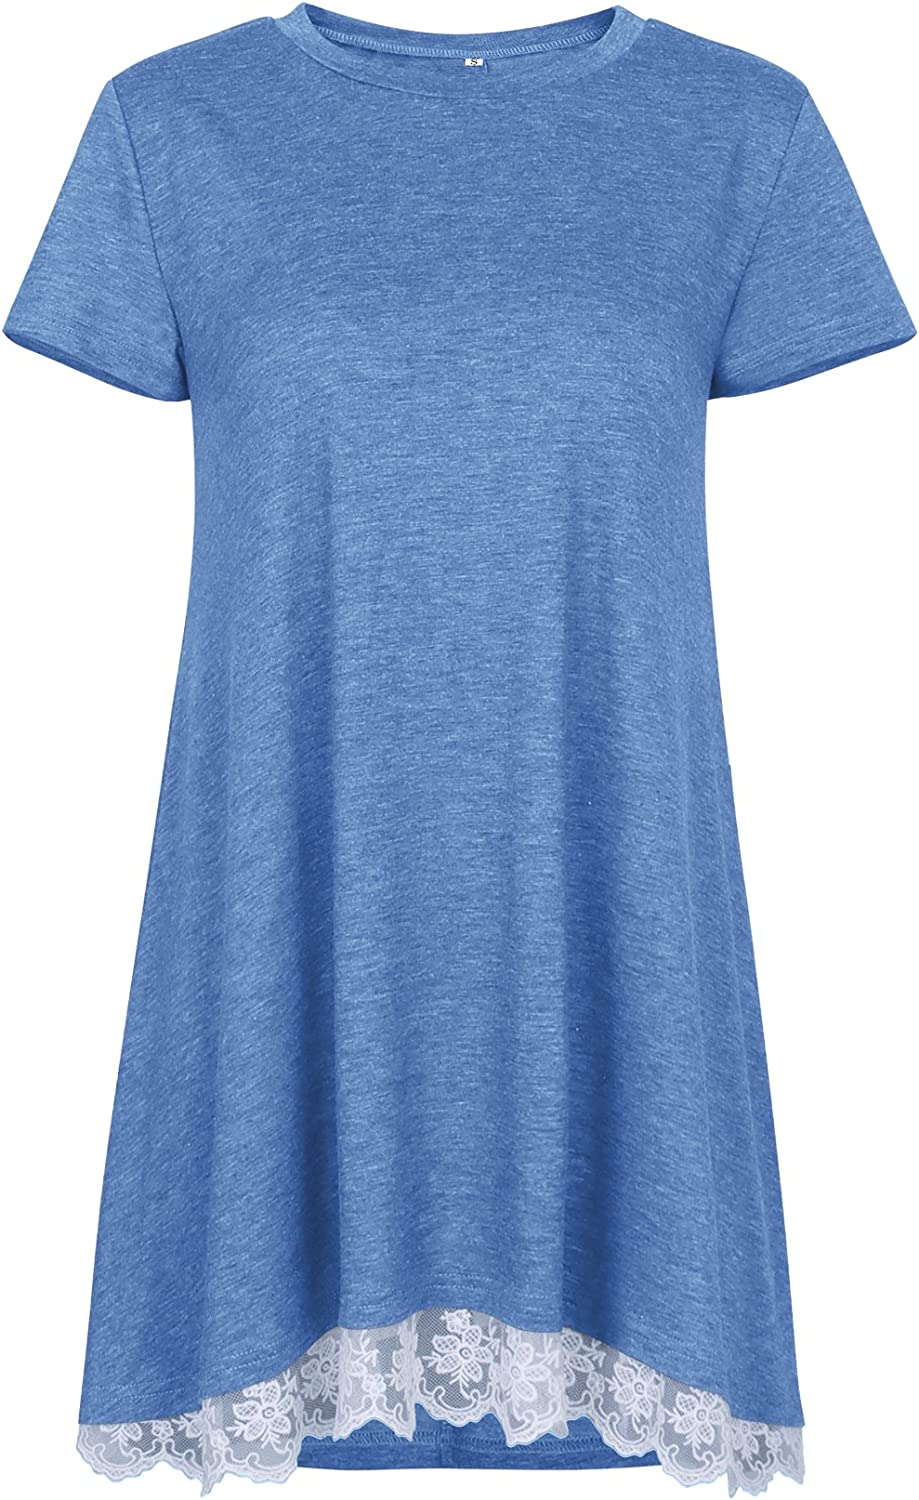 NICIAS Womens Lace Casual Short Sleeve Tunic Tops Loose Blouse T Shirt